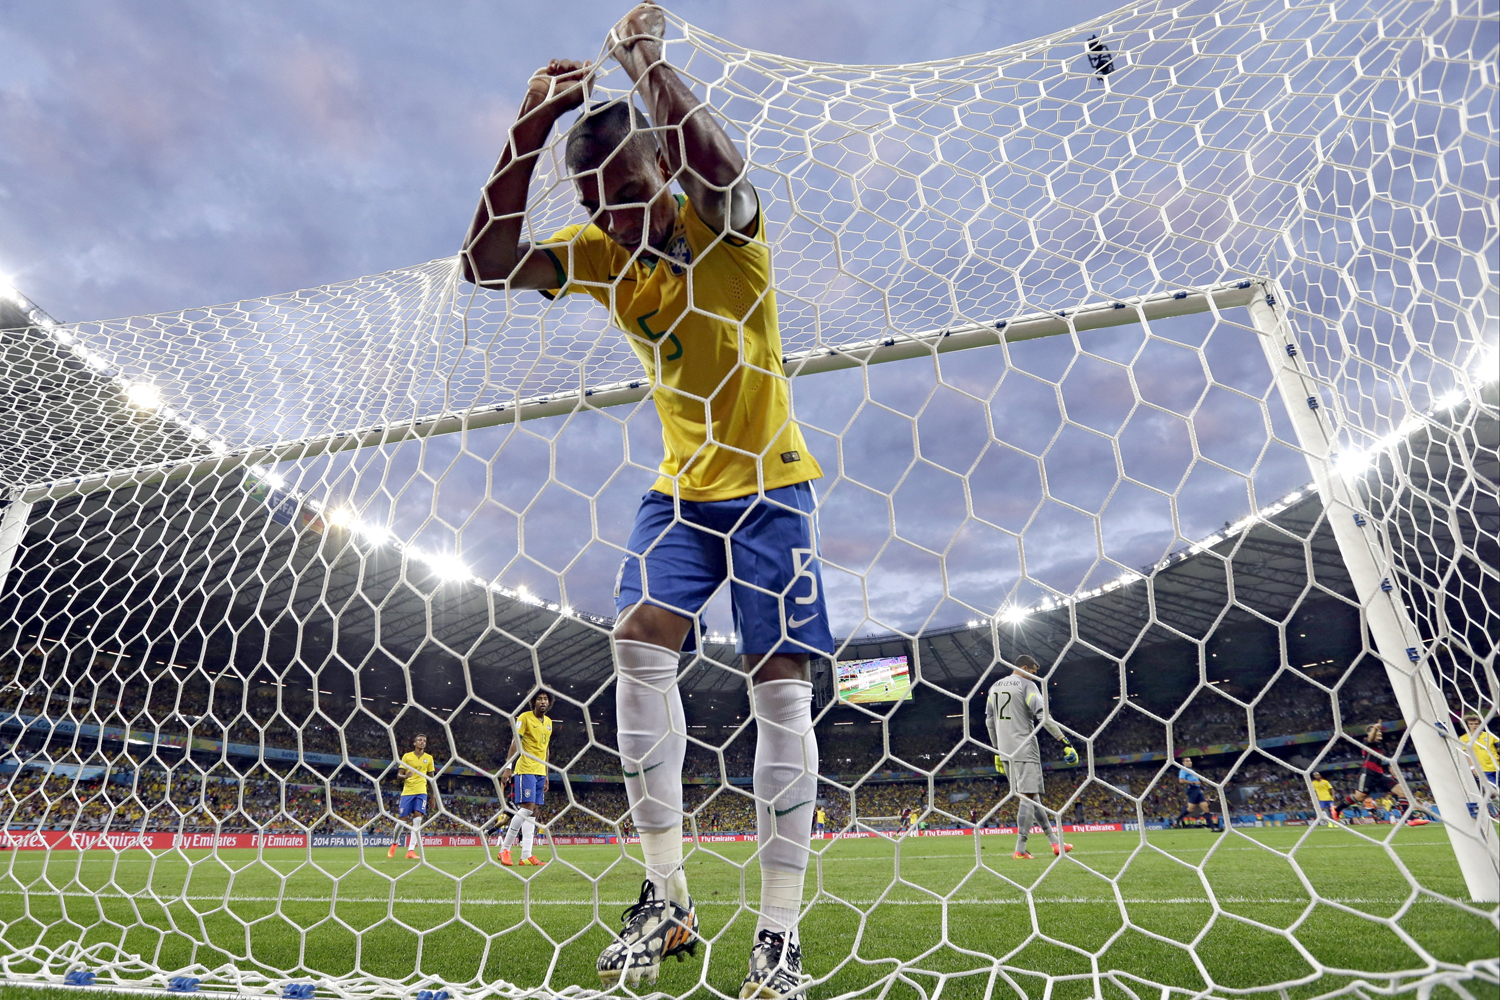 Brazil's Fernandinho reacts after Germany's Toni Kroos scored his side's third goal during the World Cup semifinal soccer match between Brazil and Germany, that ended in a 7-1 German victory, at the Mineirao Stadium in Belo Horizonte, Brazil, July 8, 2014.